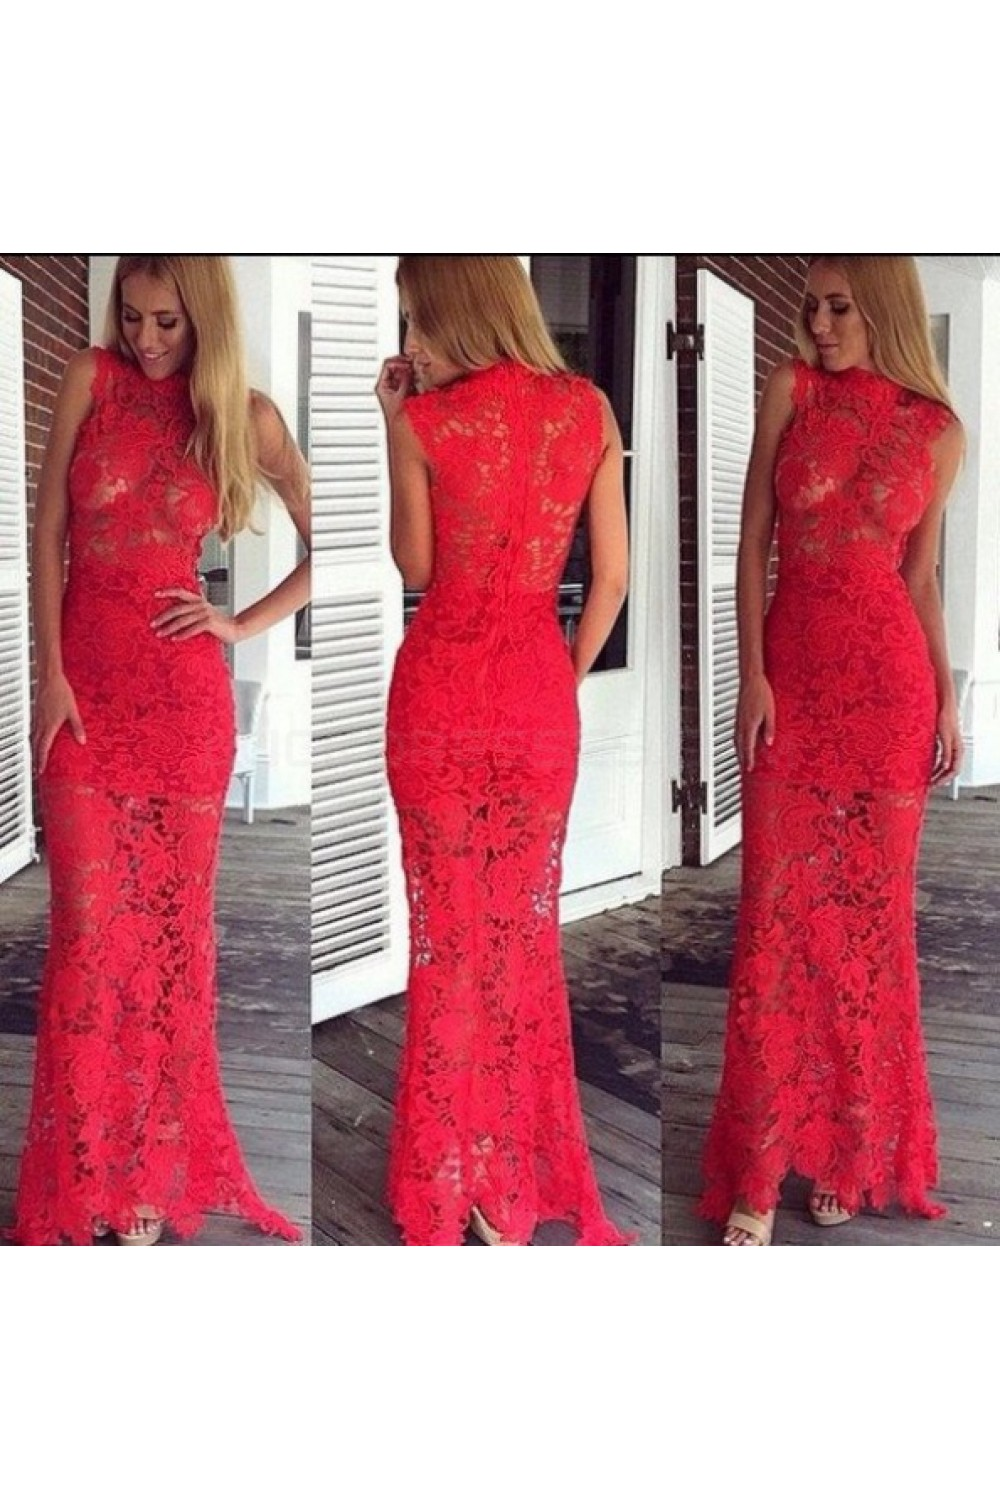 Mermaid Long Red Lace Prom Formal Evening Party Dresses 3021028